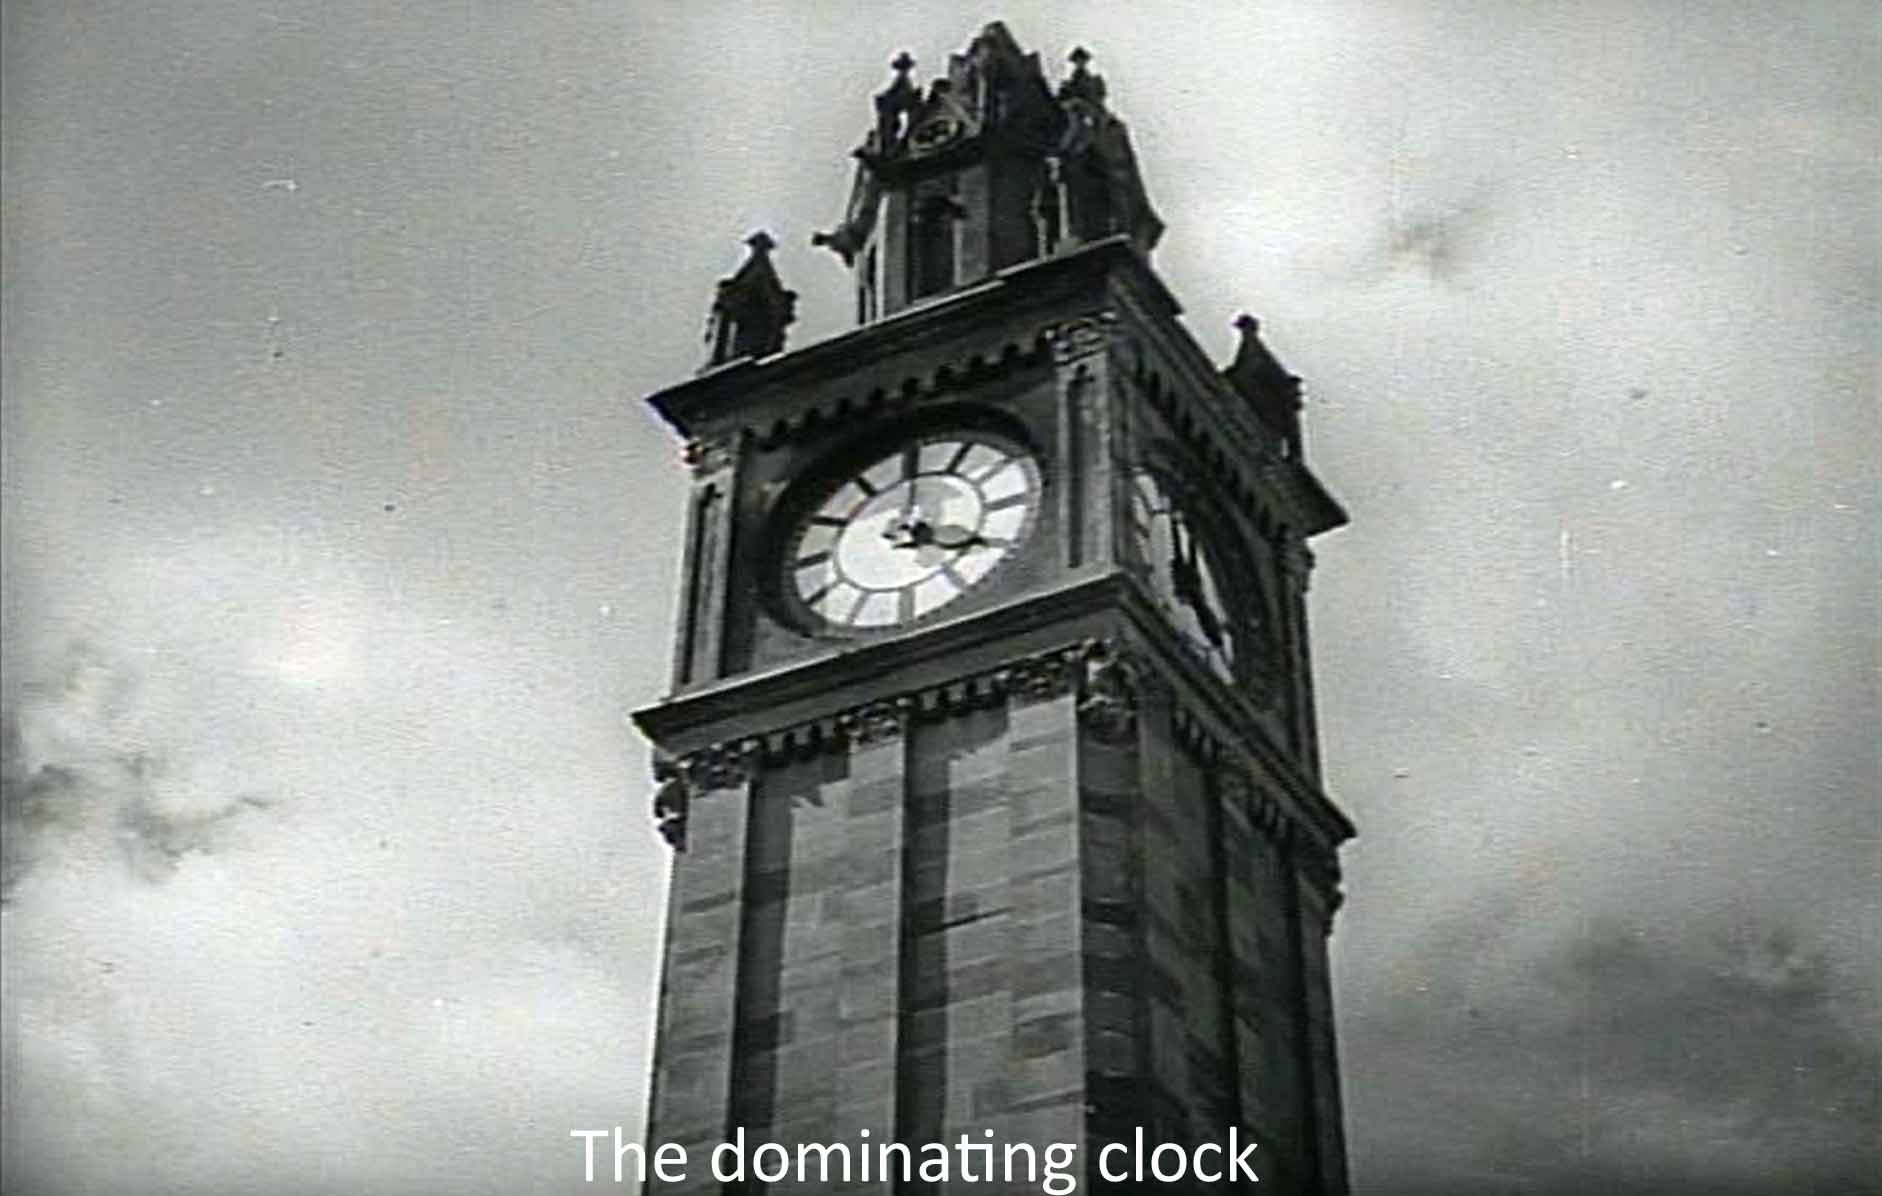 The dominating clock